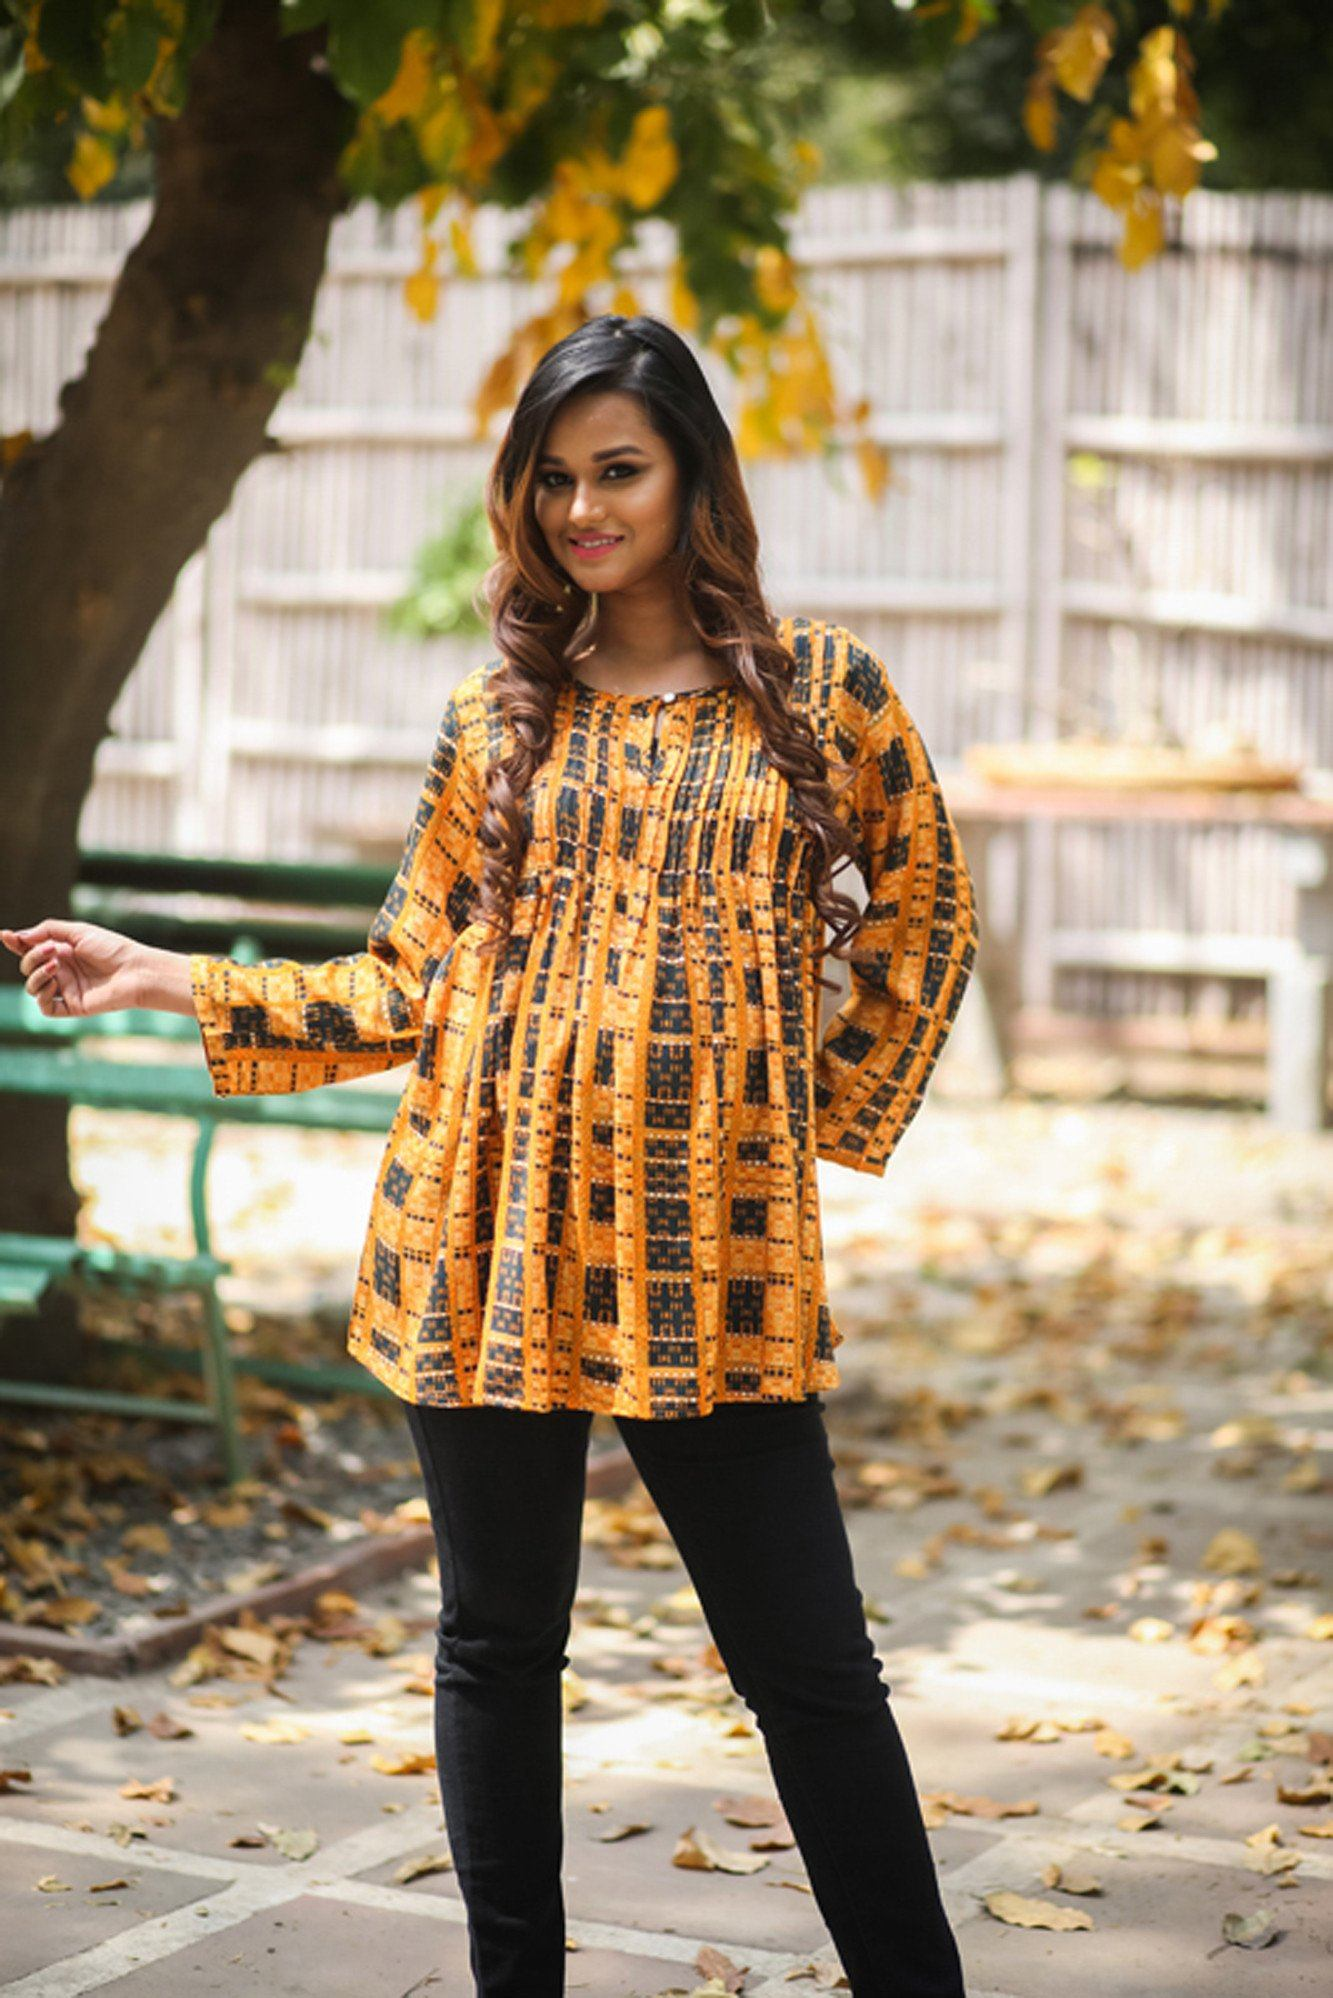 Buy maternity clothes pregnancy wear online india momzjoy maternity nursing top maternity wear pregnancy clothes online india ombrellifo Gallery